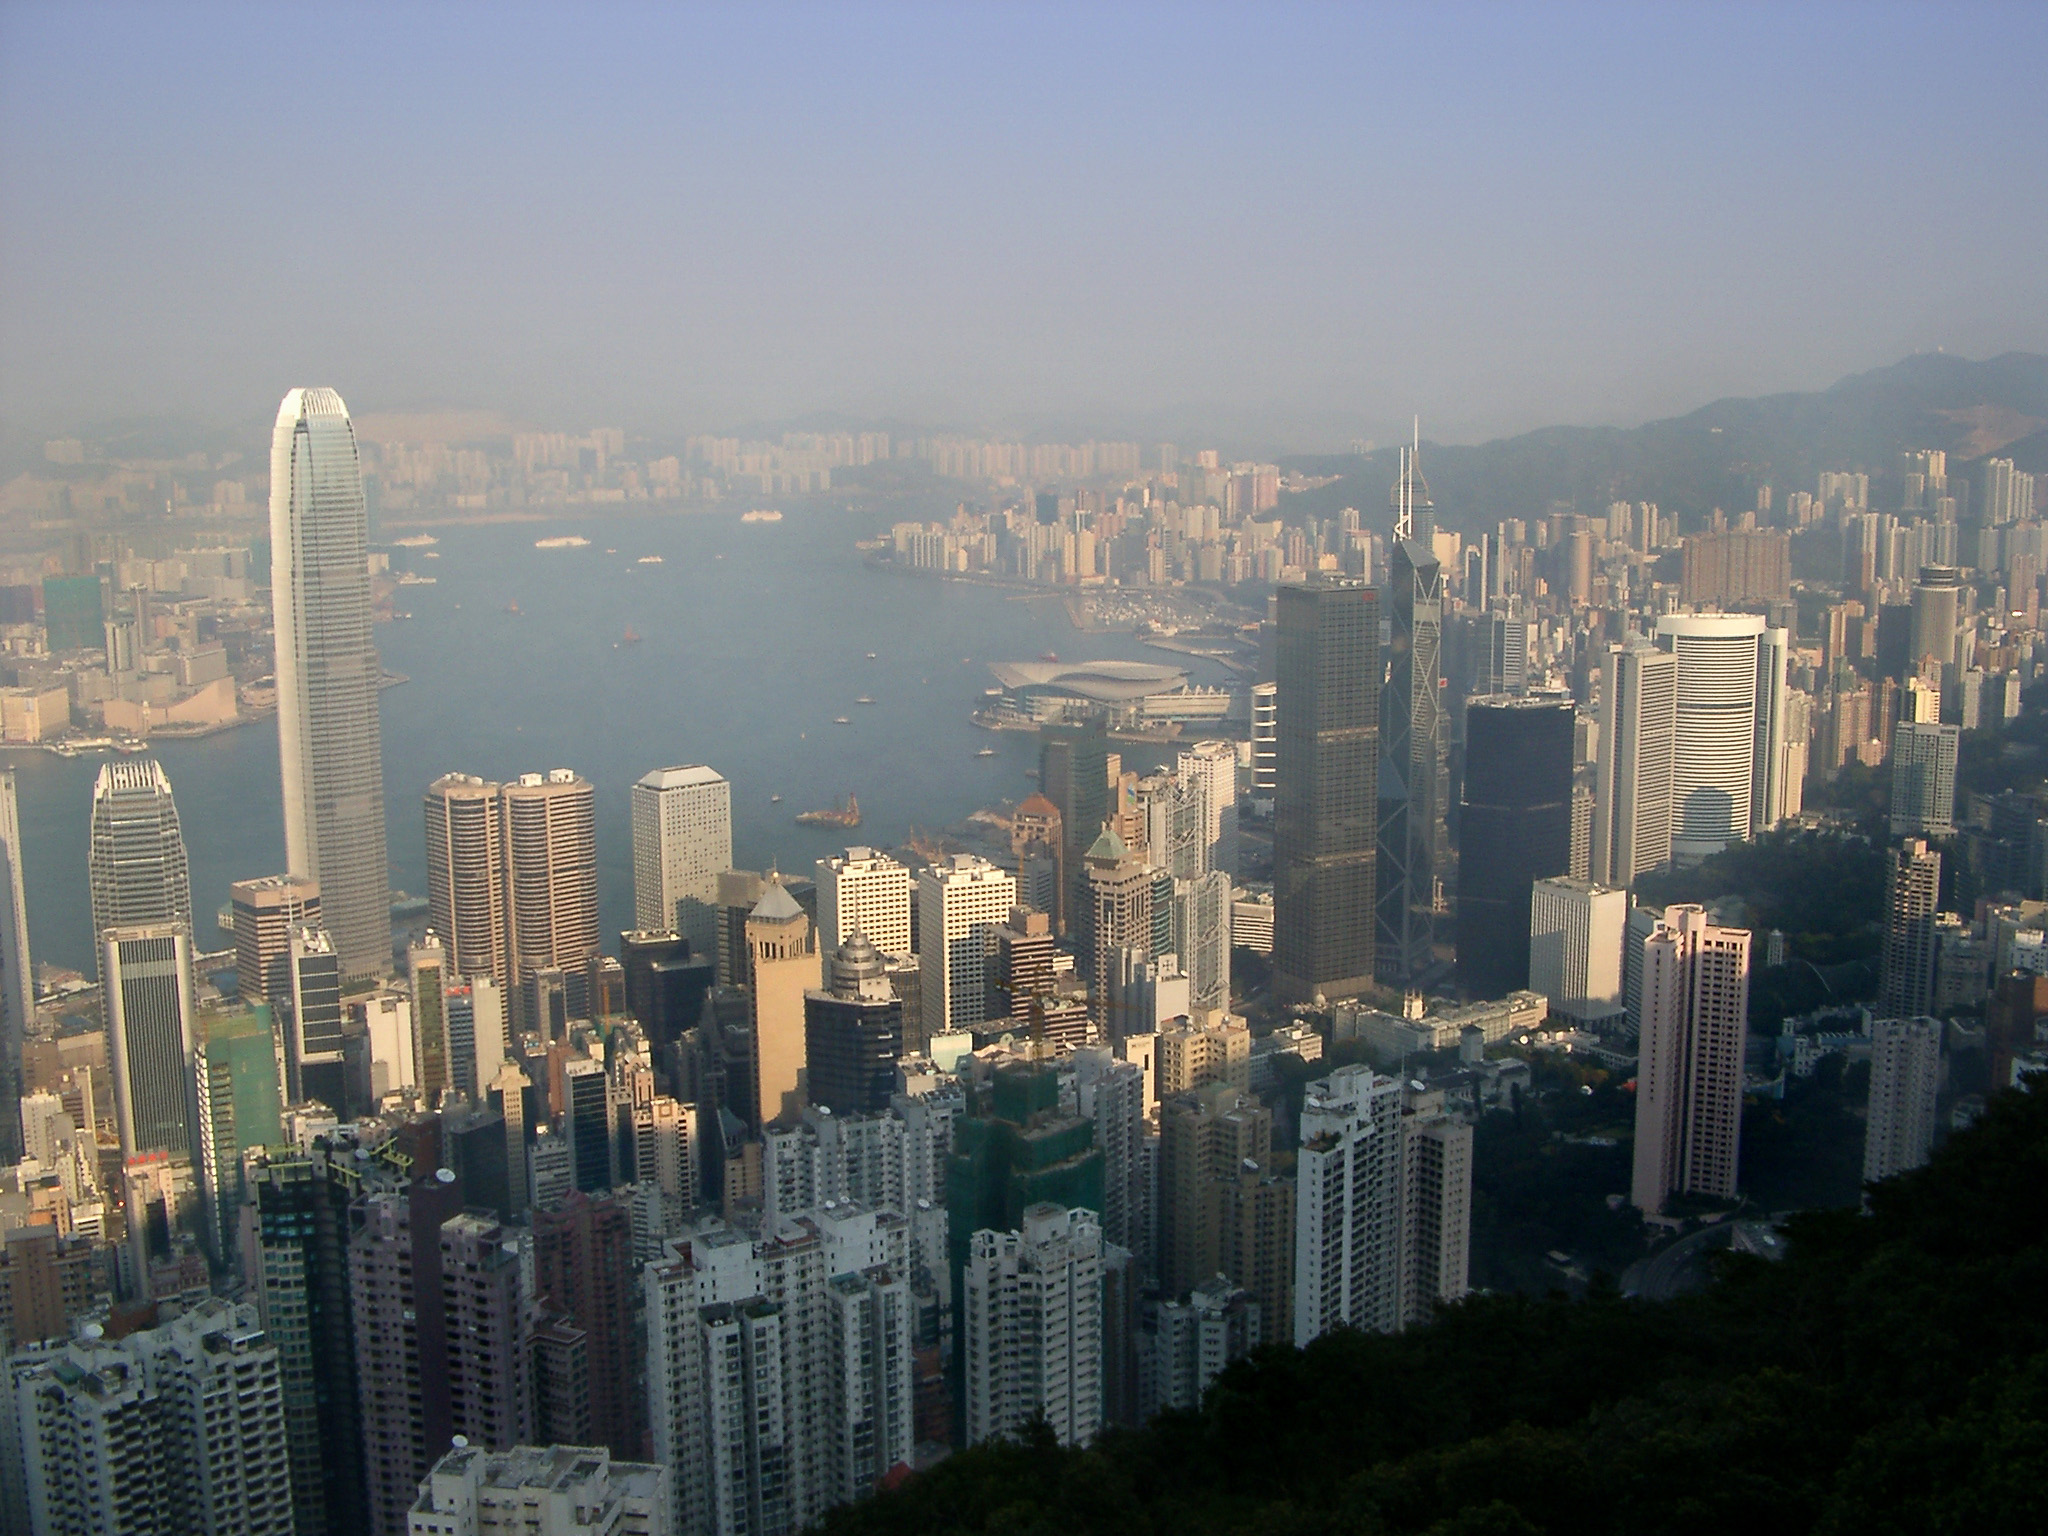 Hong Kong cityscape on a hazy day showing the densely packed modern architecture and skyscrapers with a view out to sea